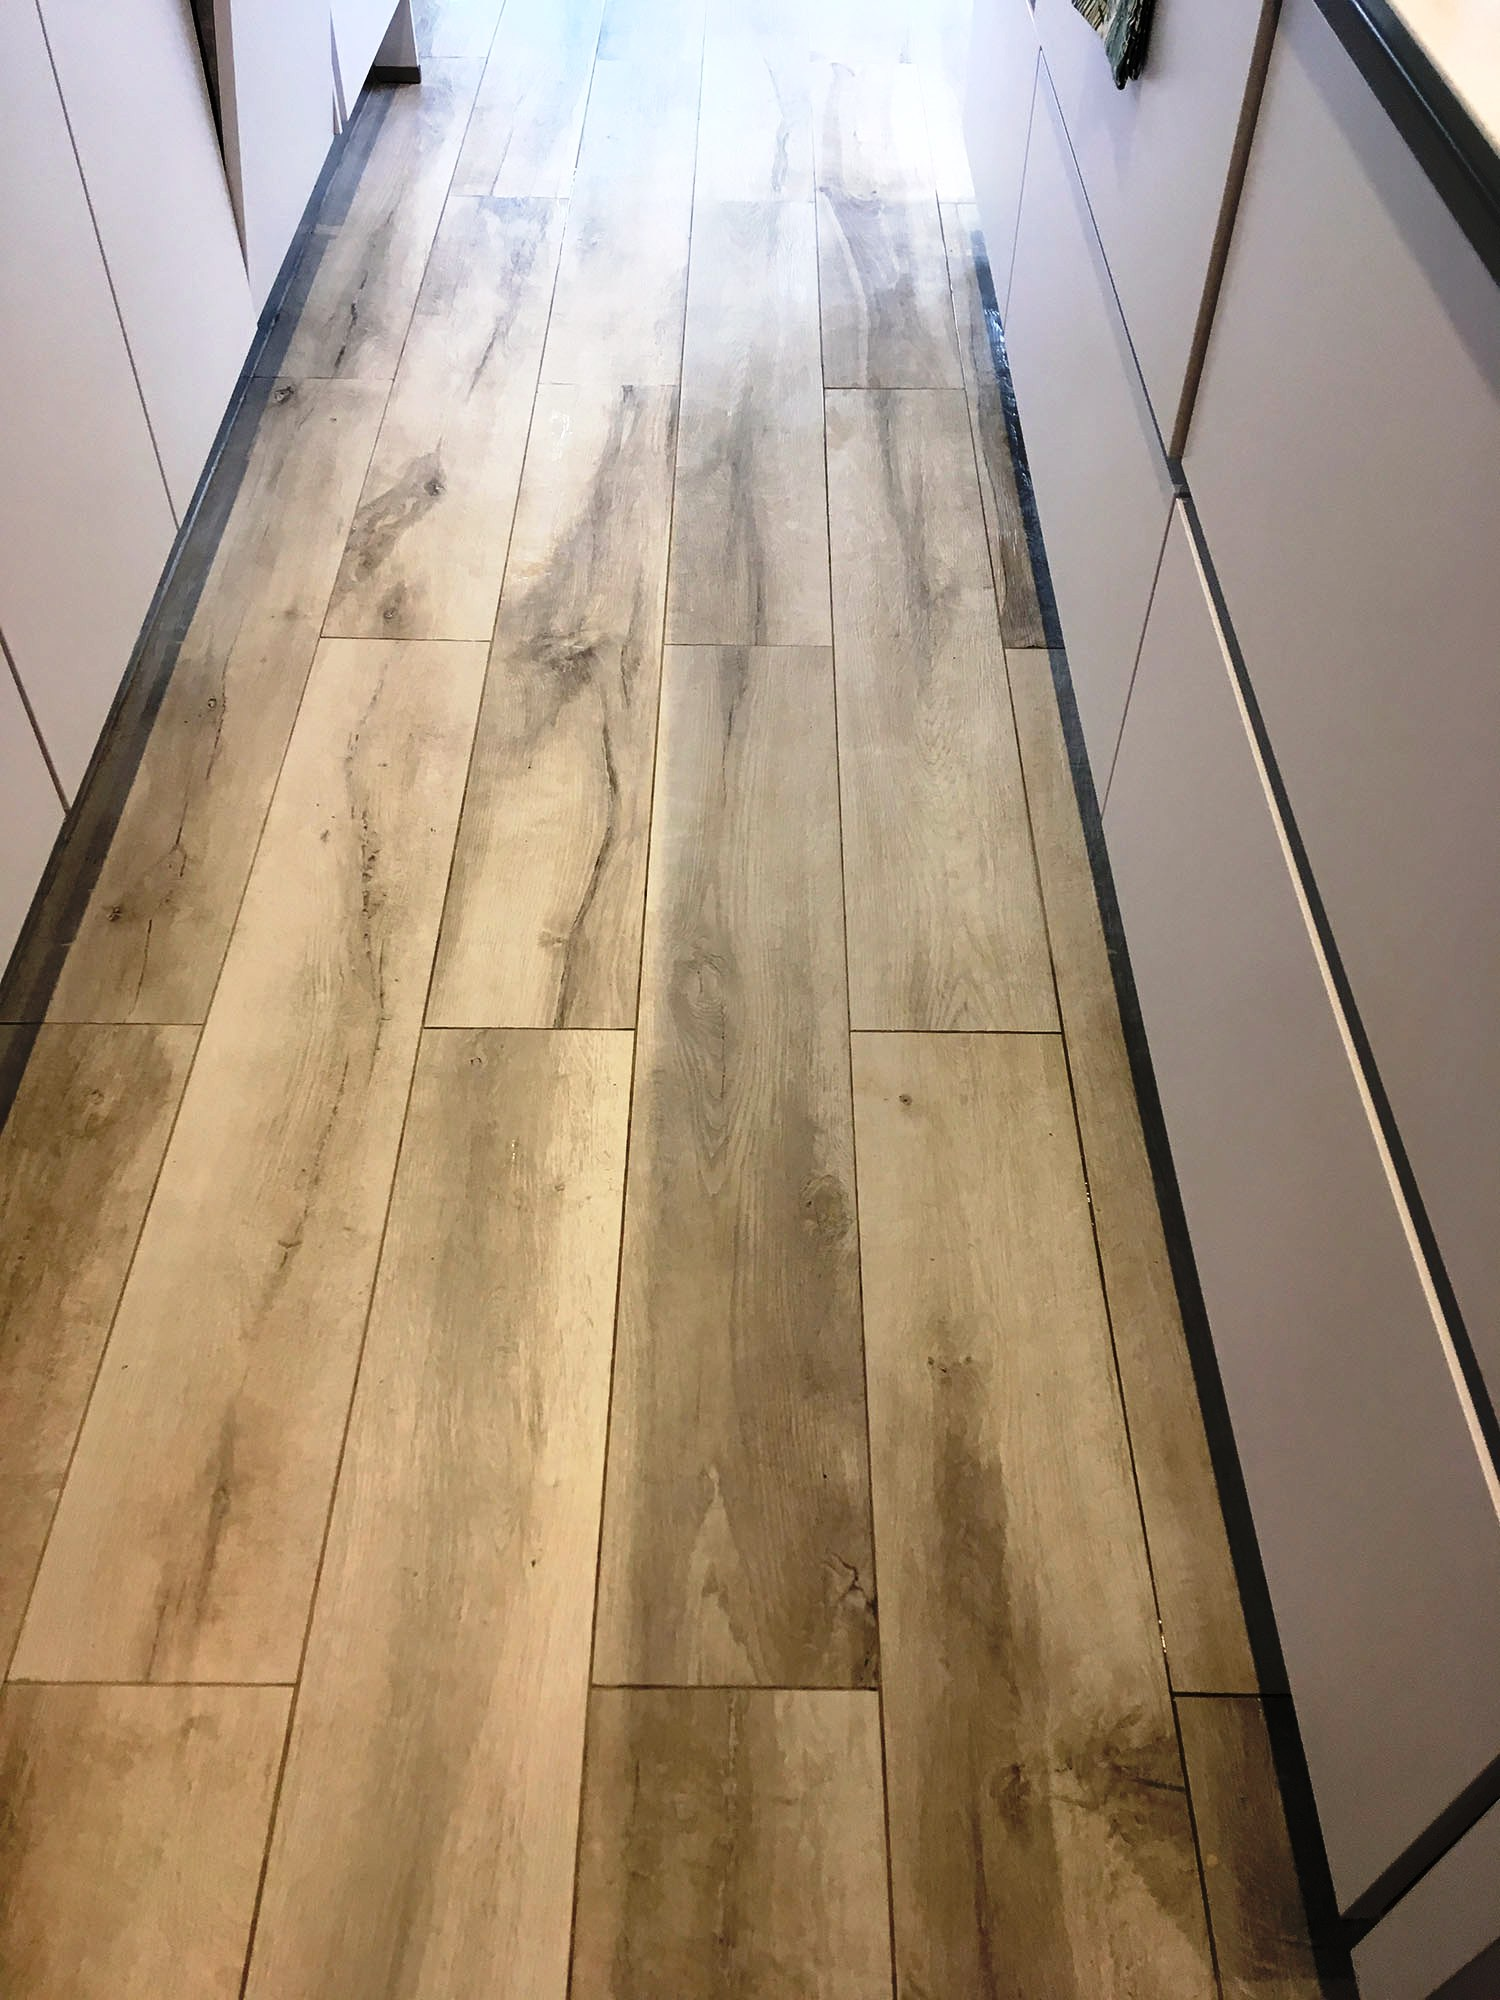 Wood Effect Porcelain Floor After Deep Cleaning Hampton